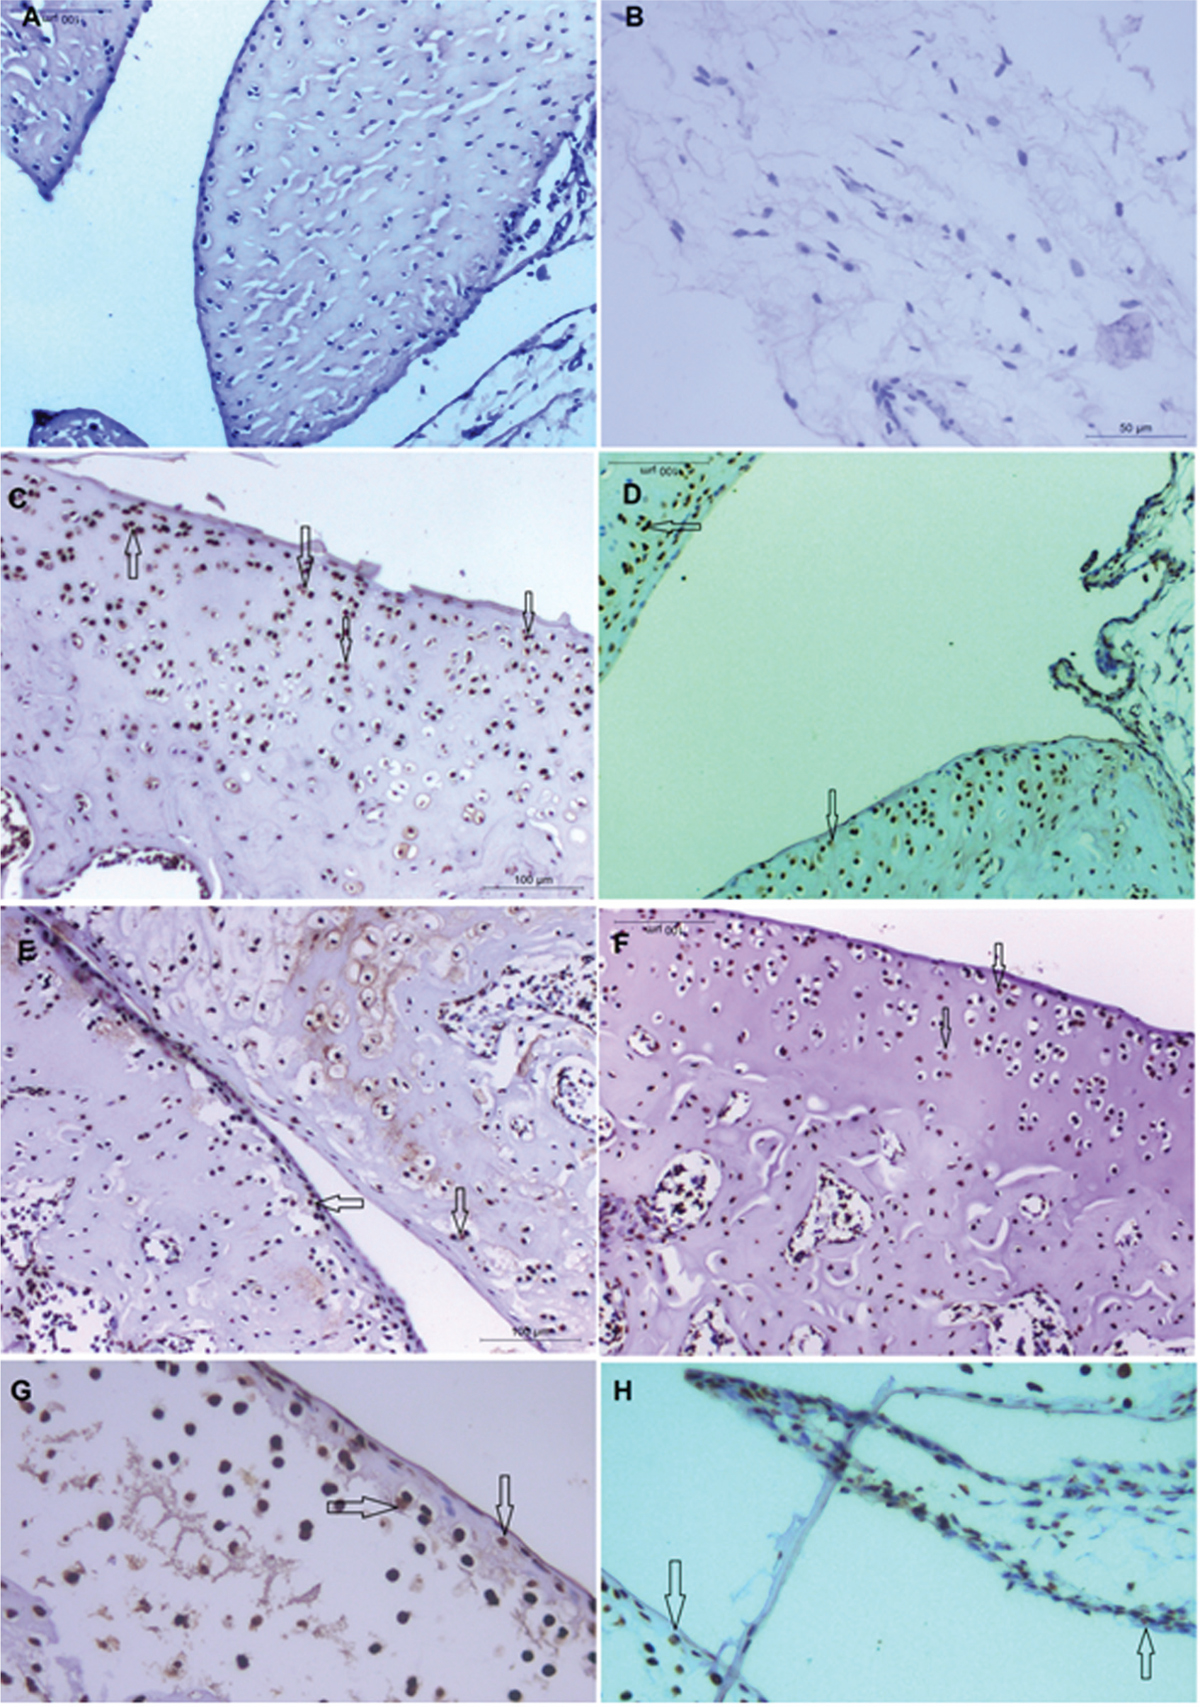 Figure 3 Immunohistochemical staining of articular tissue from different groups. (A) Section at the knee joint of the control group showing a negative reaction for cyclooxygenase (COX-2; ×200). (B) Section at the knee joint of the arthritic group with many cells exhibiting a positive cytoplasmic reaction (arrows) (COX-2; ×200). (C) Section at the knee joint of the OMEGA-treated group showing a positive reaction in some cells in the articular cartilage as well as in the synovial membrane (arrows) (COX-2; ×200). (D) Section at the knee joint of the DEX-treated group showing a positive reaction in few cells in the articular cartilage (arrows) (COX-2; ×200). (E) Section at the knee joint of the MTX-treated group showing a positive reaction in some cells in the articular cartilage (arrows) (COX-2; ×200). (F) Section at the knee joint of the OMEGA combined with the DEX-treated group showing a positive reaction in few cells in the articular cartilage (arrows) (COX-2; ×400). (G) Section at the knee joint of the OMEGA combined with the MTX-treated group showing a positive reaction in relatively few cells in the articular cartilage as well as in the synovial membrane (arrows) (COX-2; ×400). DEX, dexamethasone; MTX, methotrexate; OMEGA, omega-3.